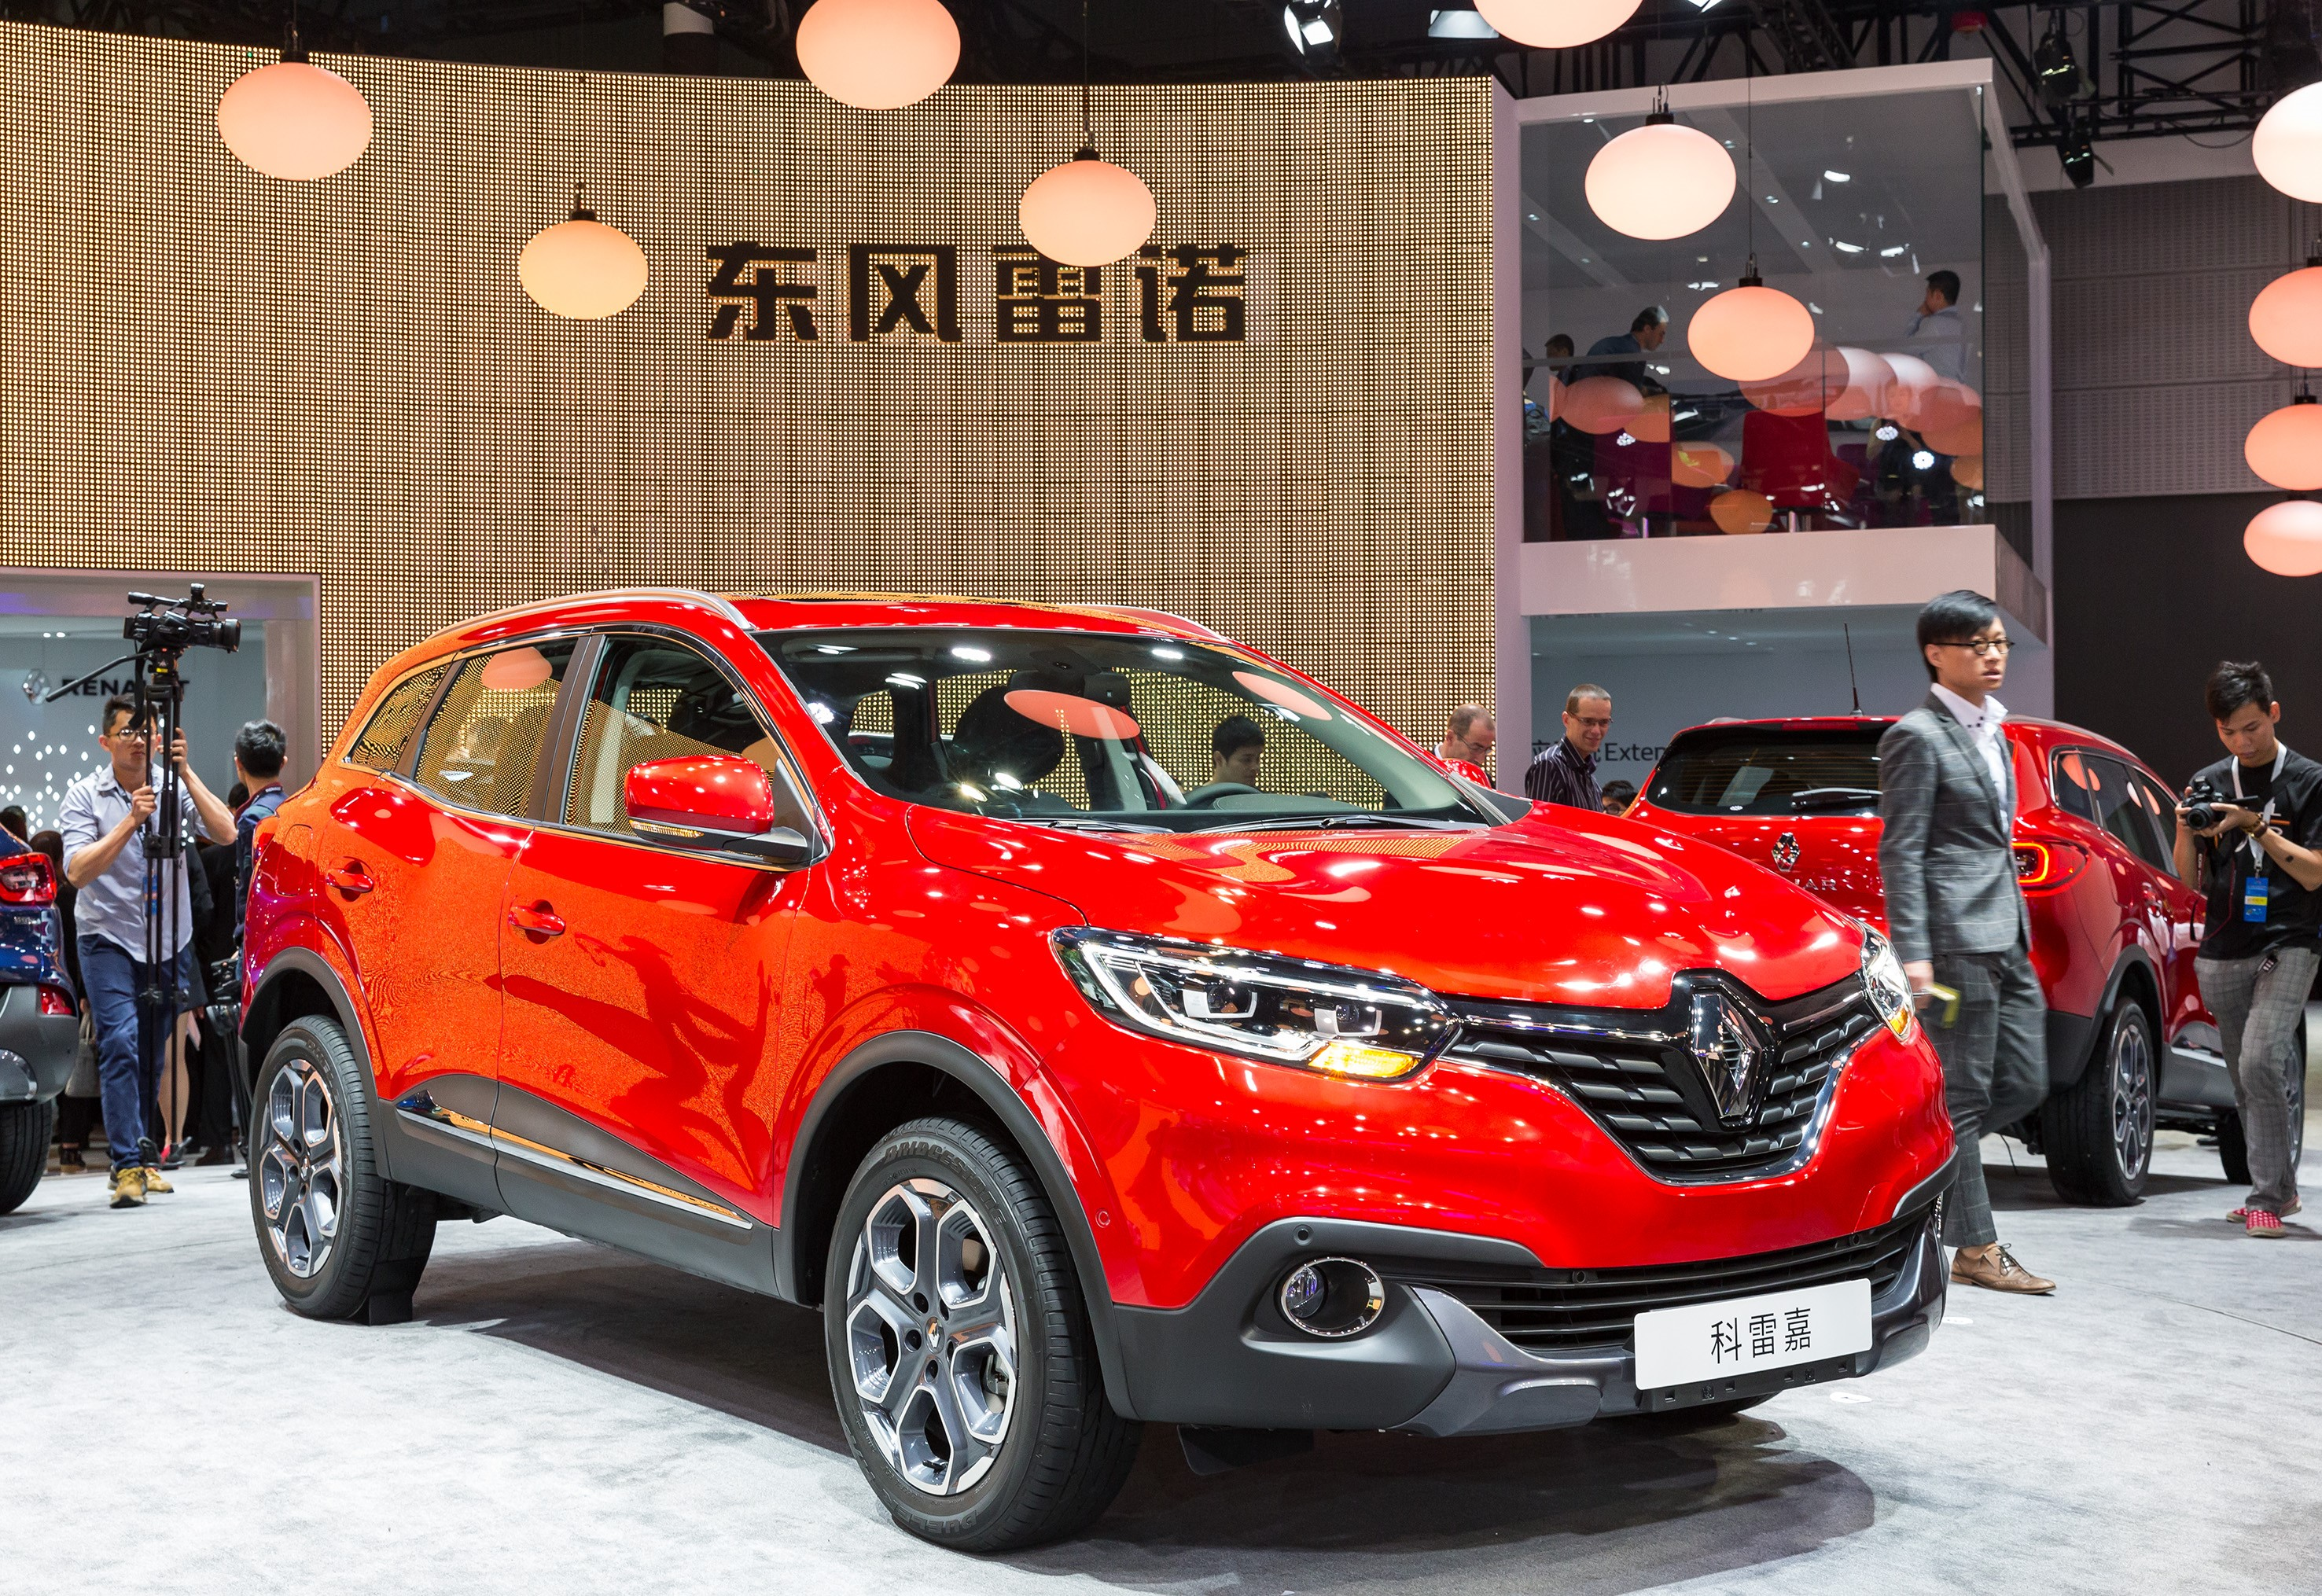 renault kadjar debuts in china as the first locally assembled suv autoevolution. Black Bedroom Furniture Sets. Home Design Ideas